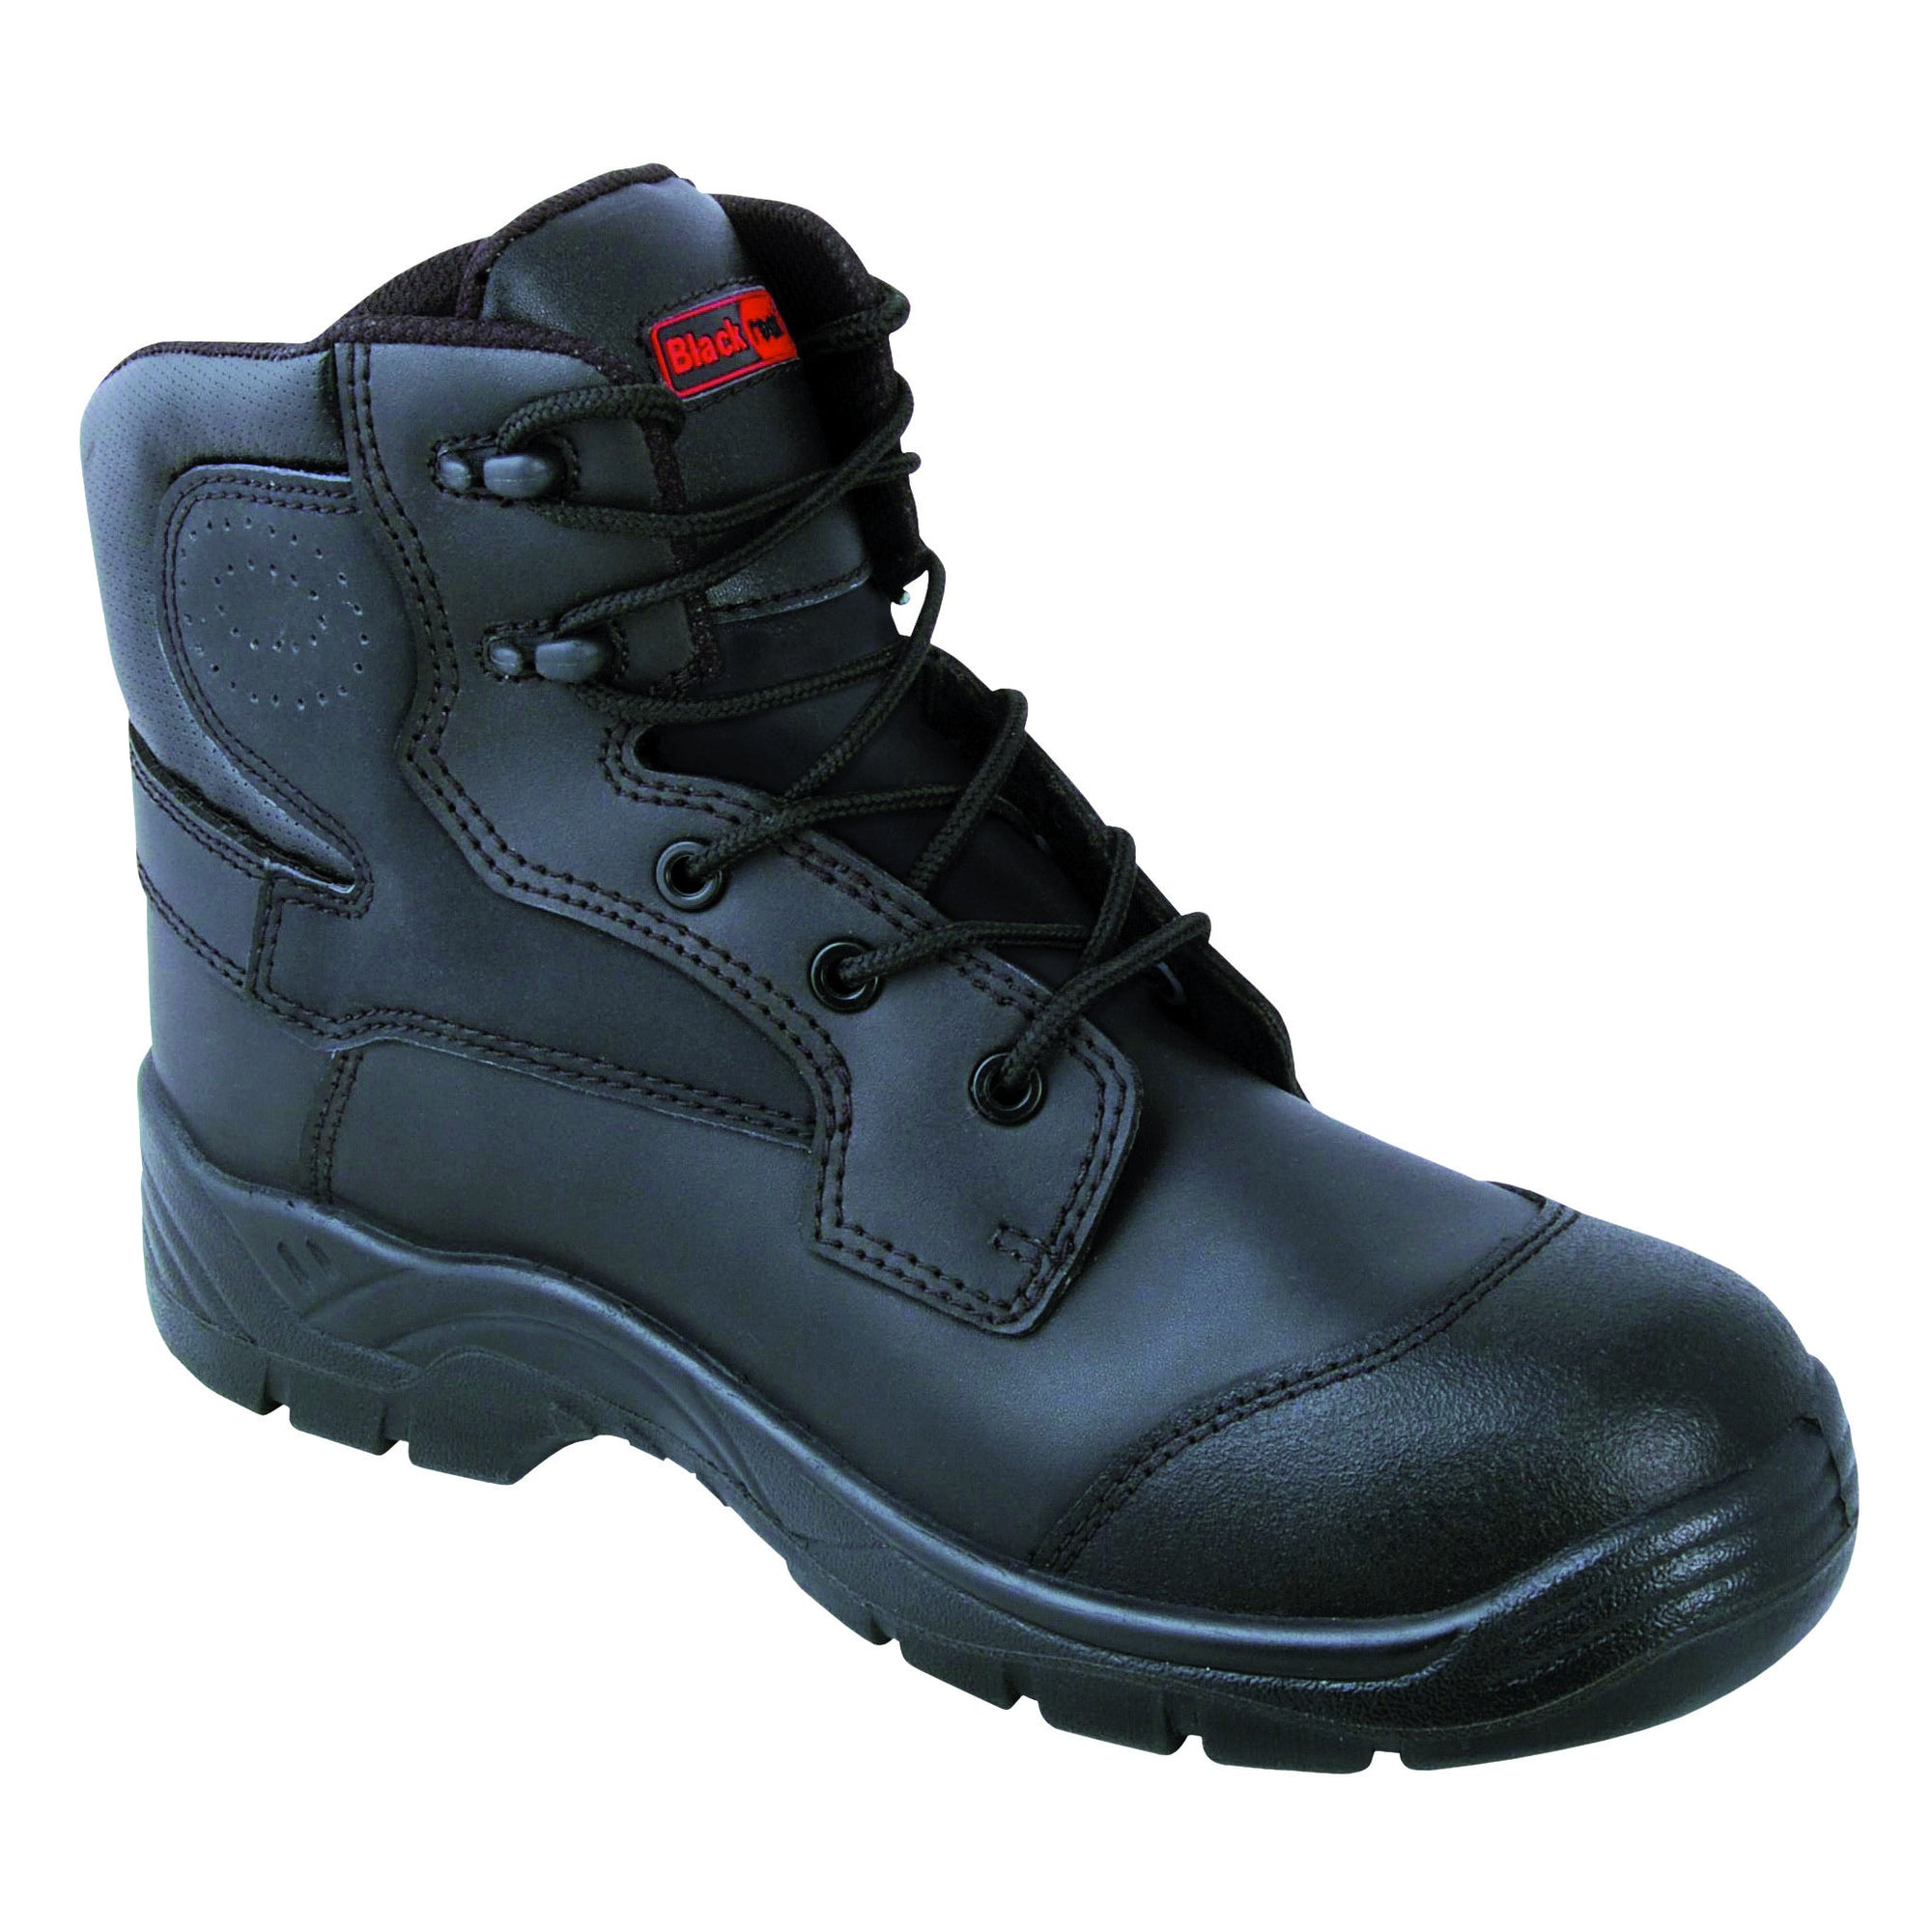 Safety Boot Composite - peterdrew.com